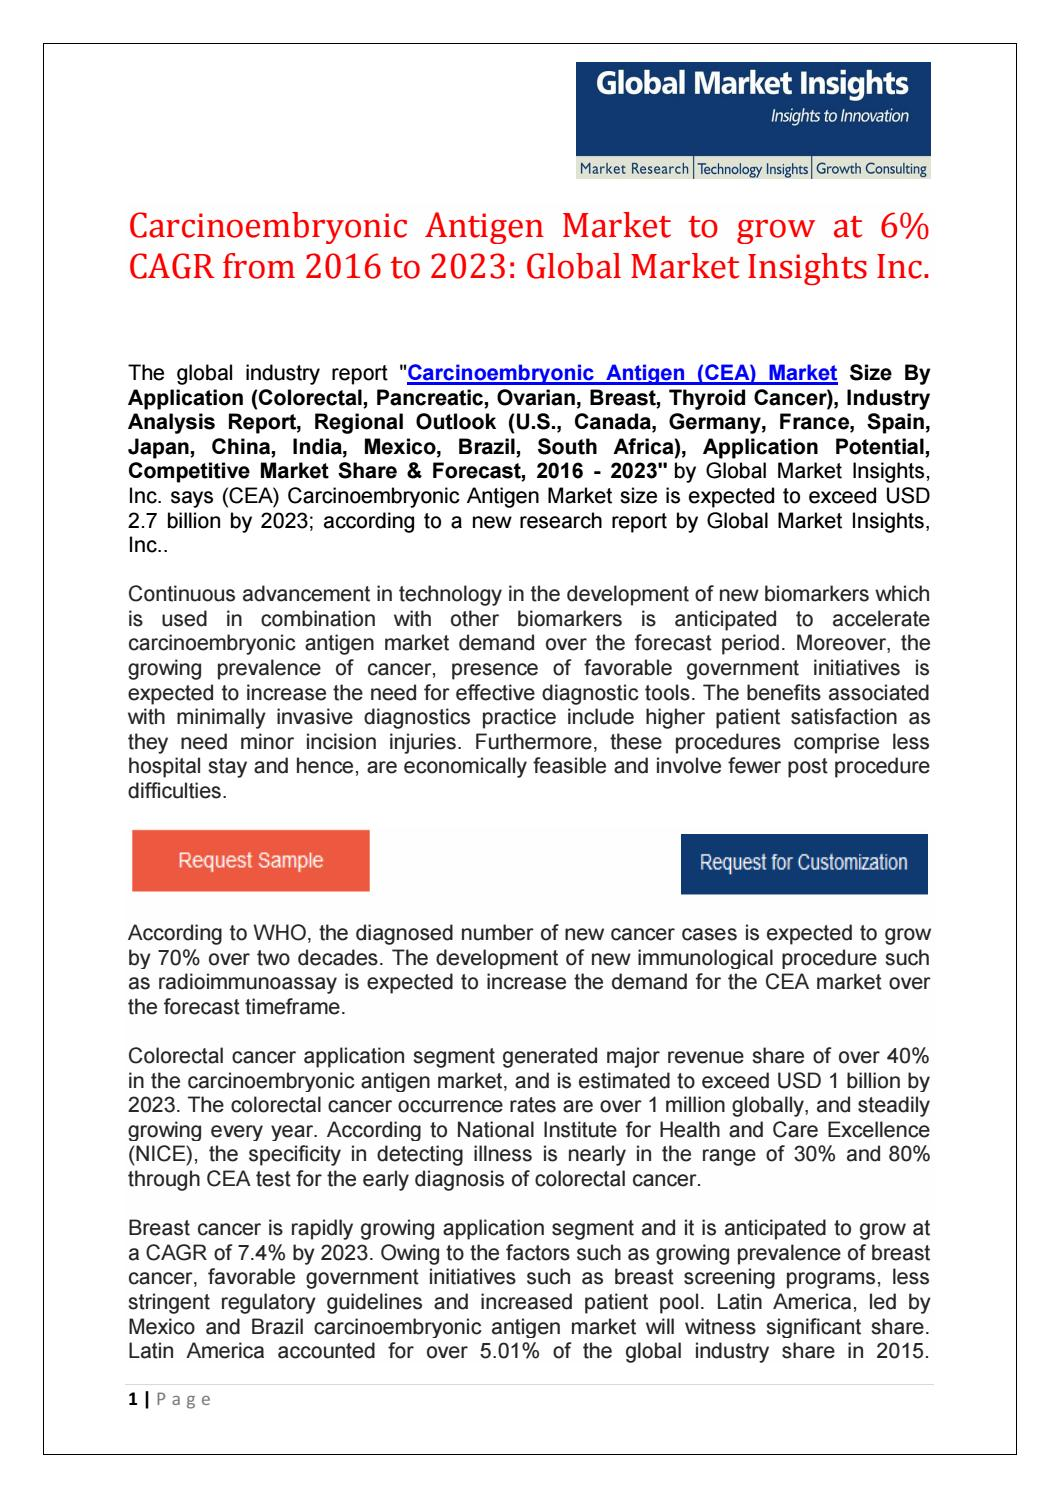 Carcinoembryonic Antigen Market To Reach 2 7bn By 2023 By Jueekate Issuu